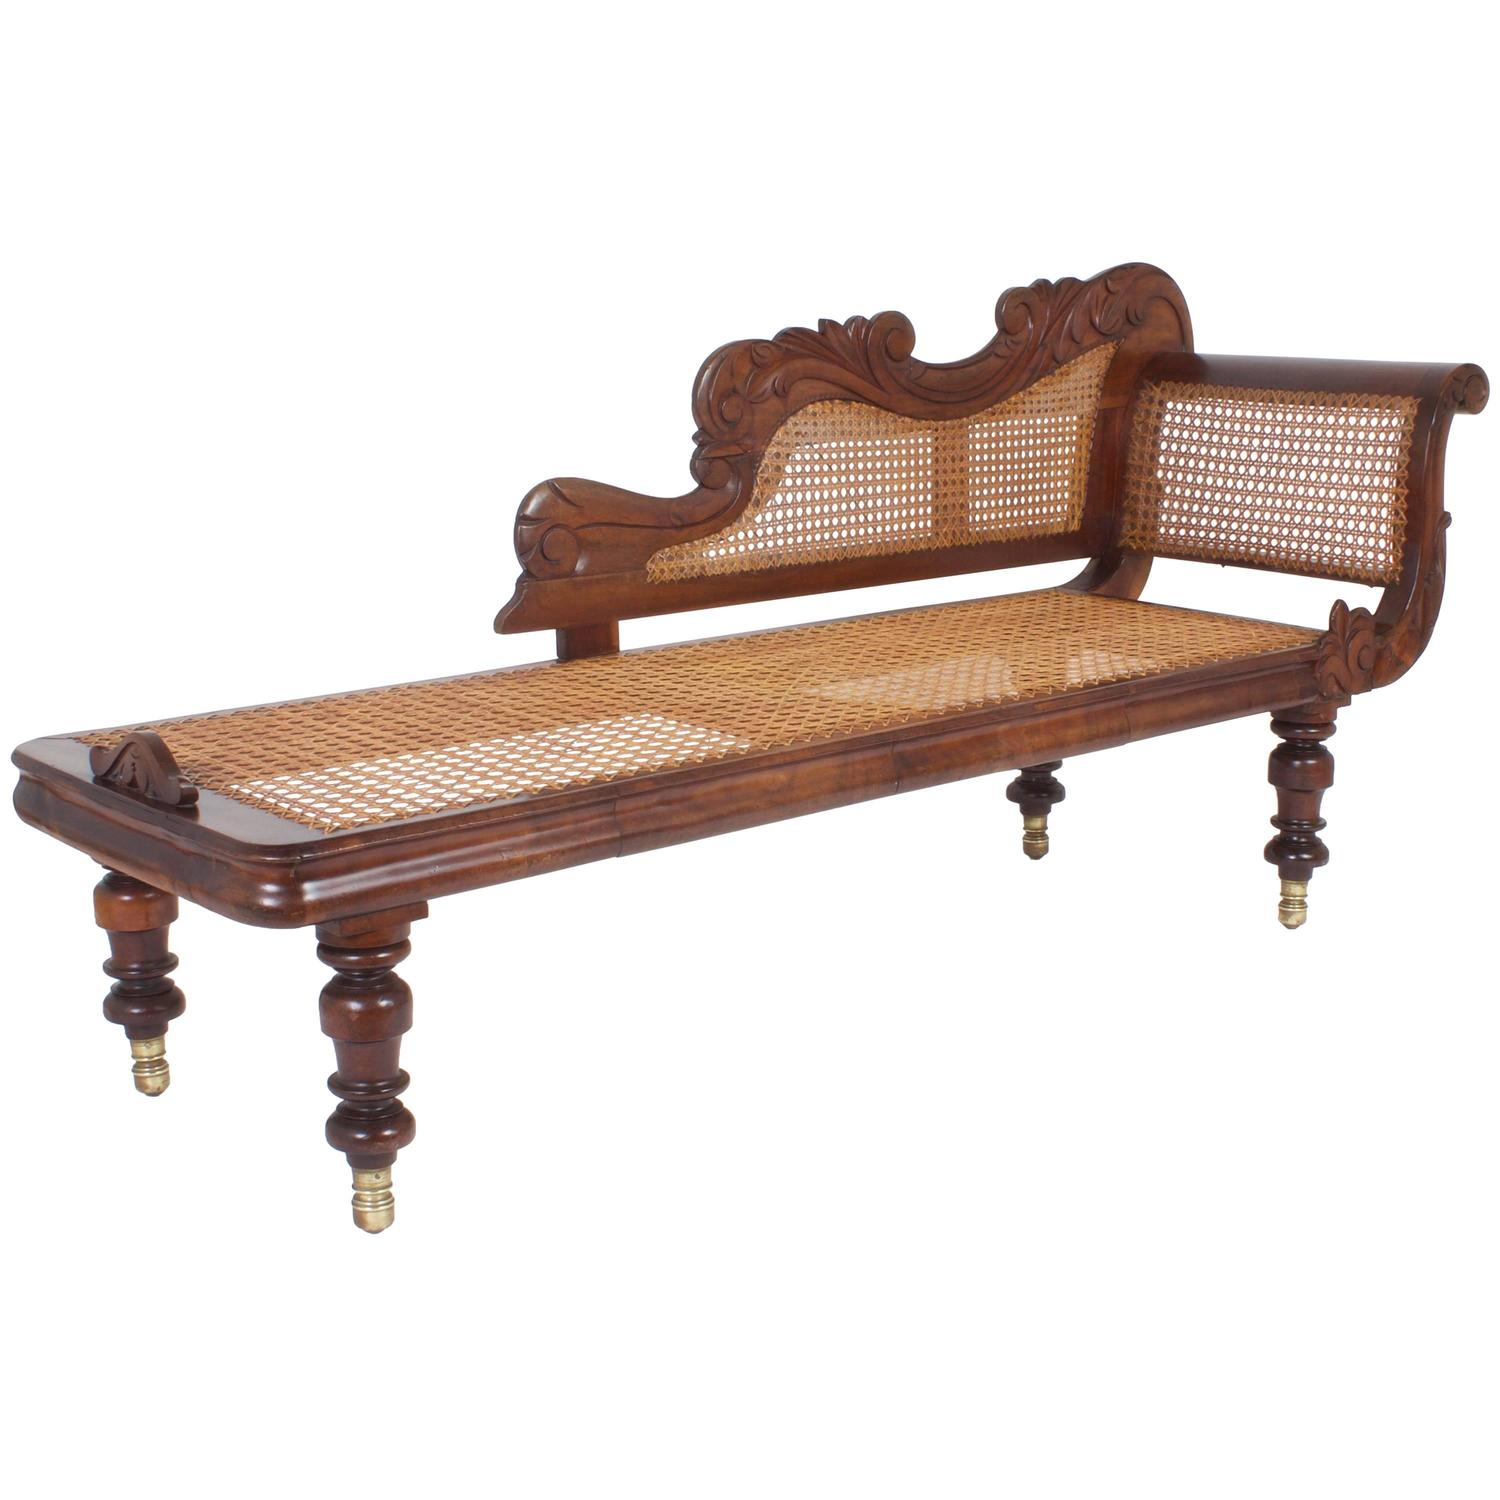 British colonial mahogany antique chaise longue at 1stdibs for Antique chaise lounge furniture